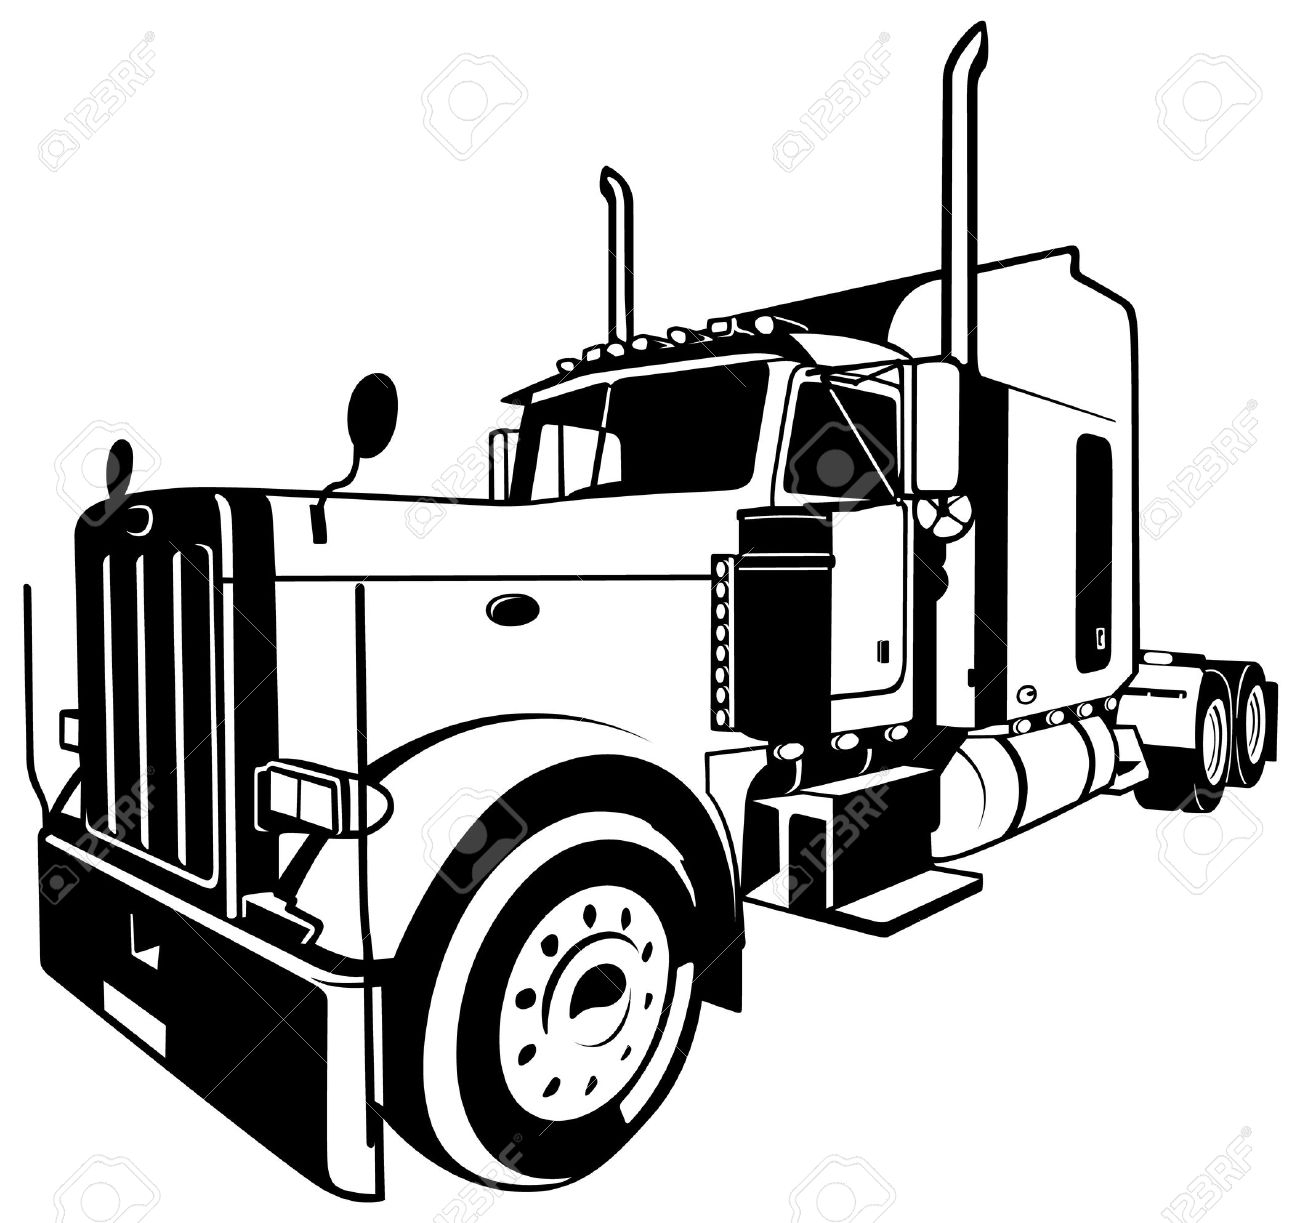 Truck Drawing at GetDrawings.com | Free for personal use Truck ...